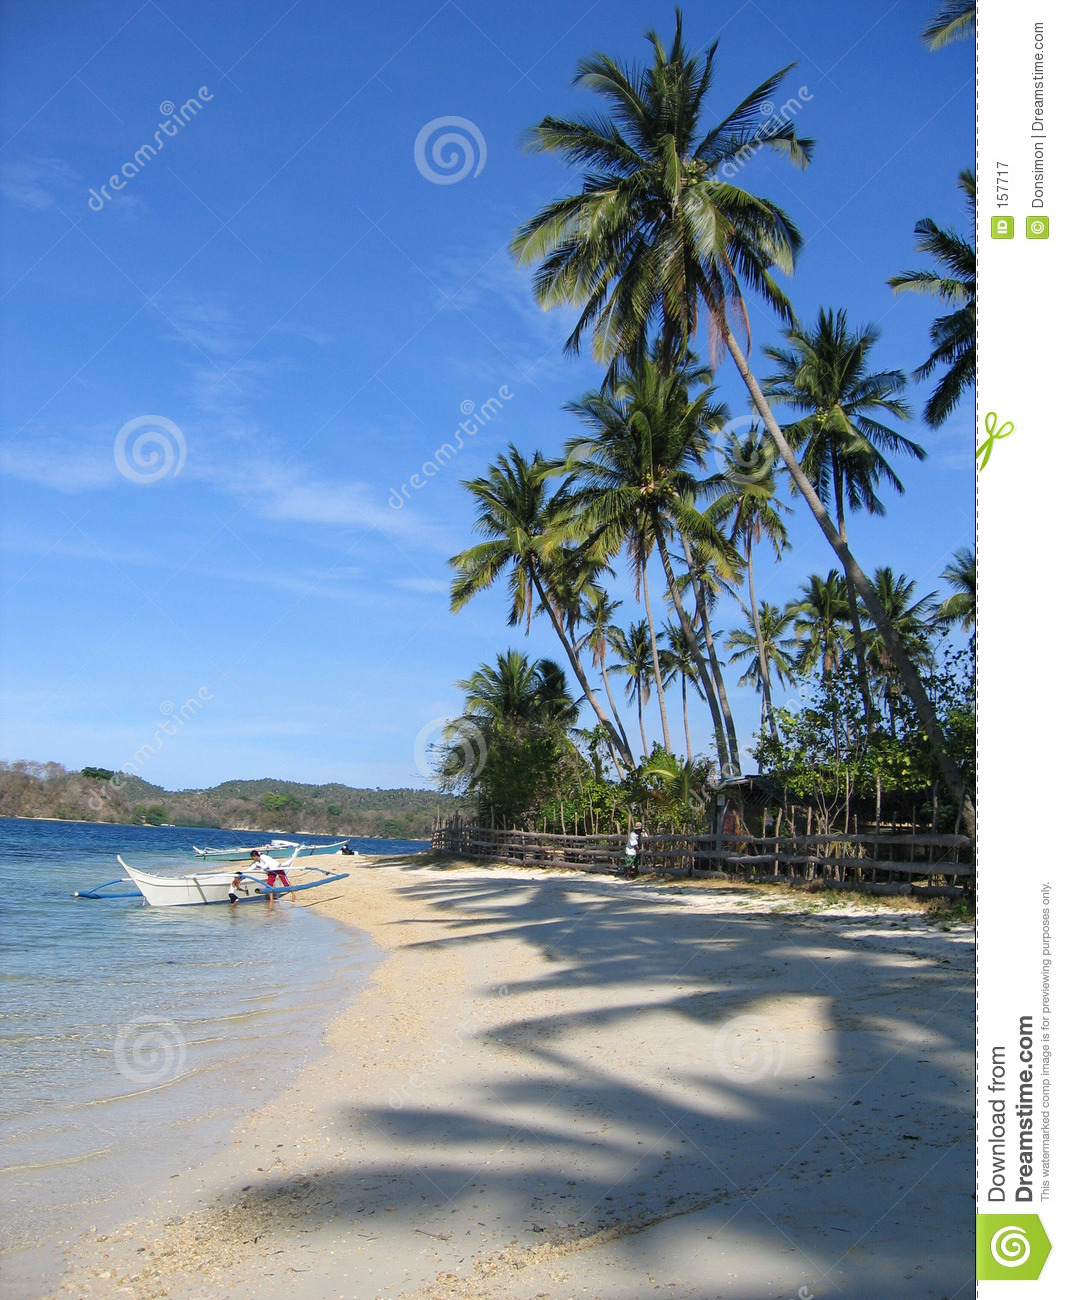 Palm Tree Beach: Tropical Beach Palm Trees Philippines Royalty Free Stock